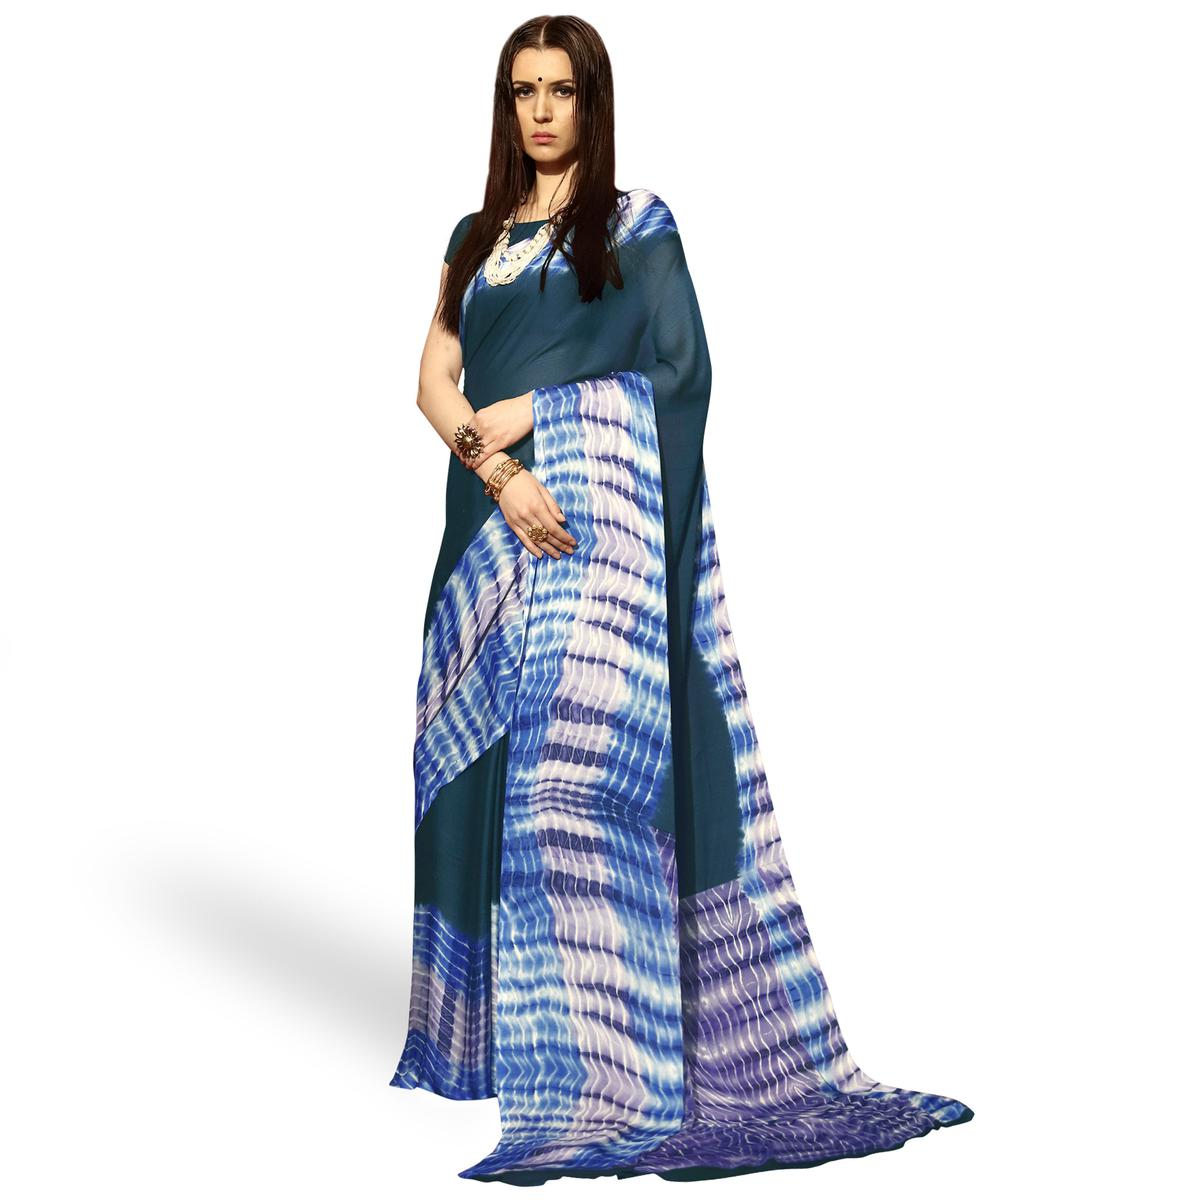 Marvellous Dark Gray Colored Casual Shibori Printed Moss Chiffon Saree